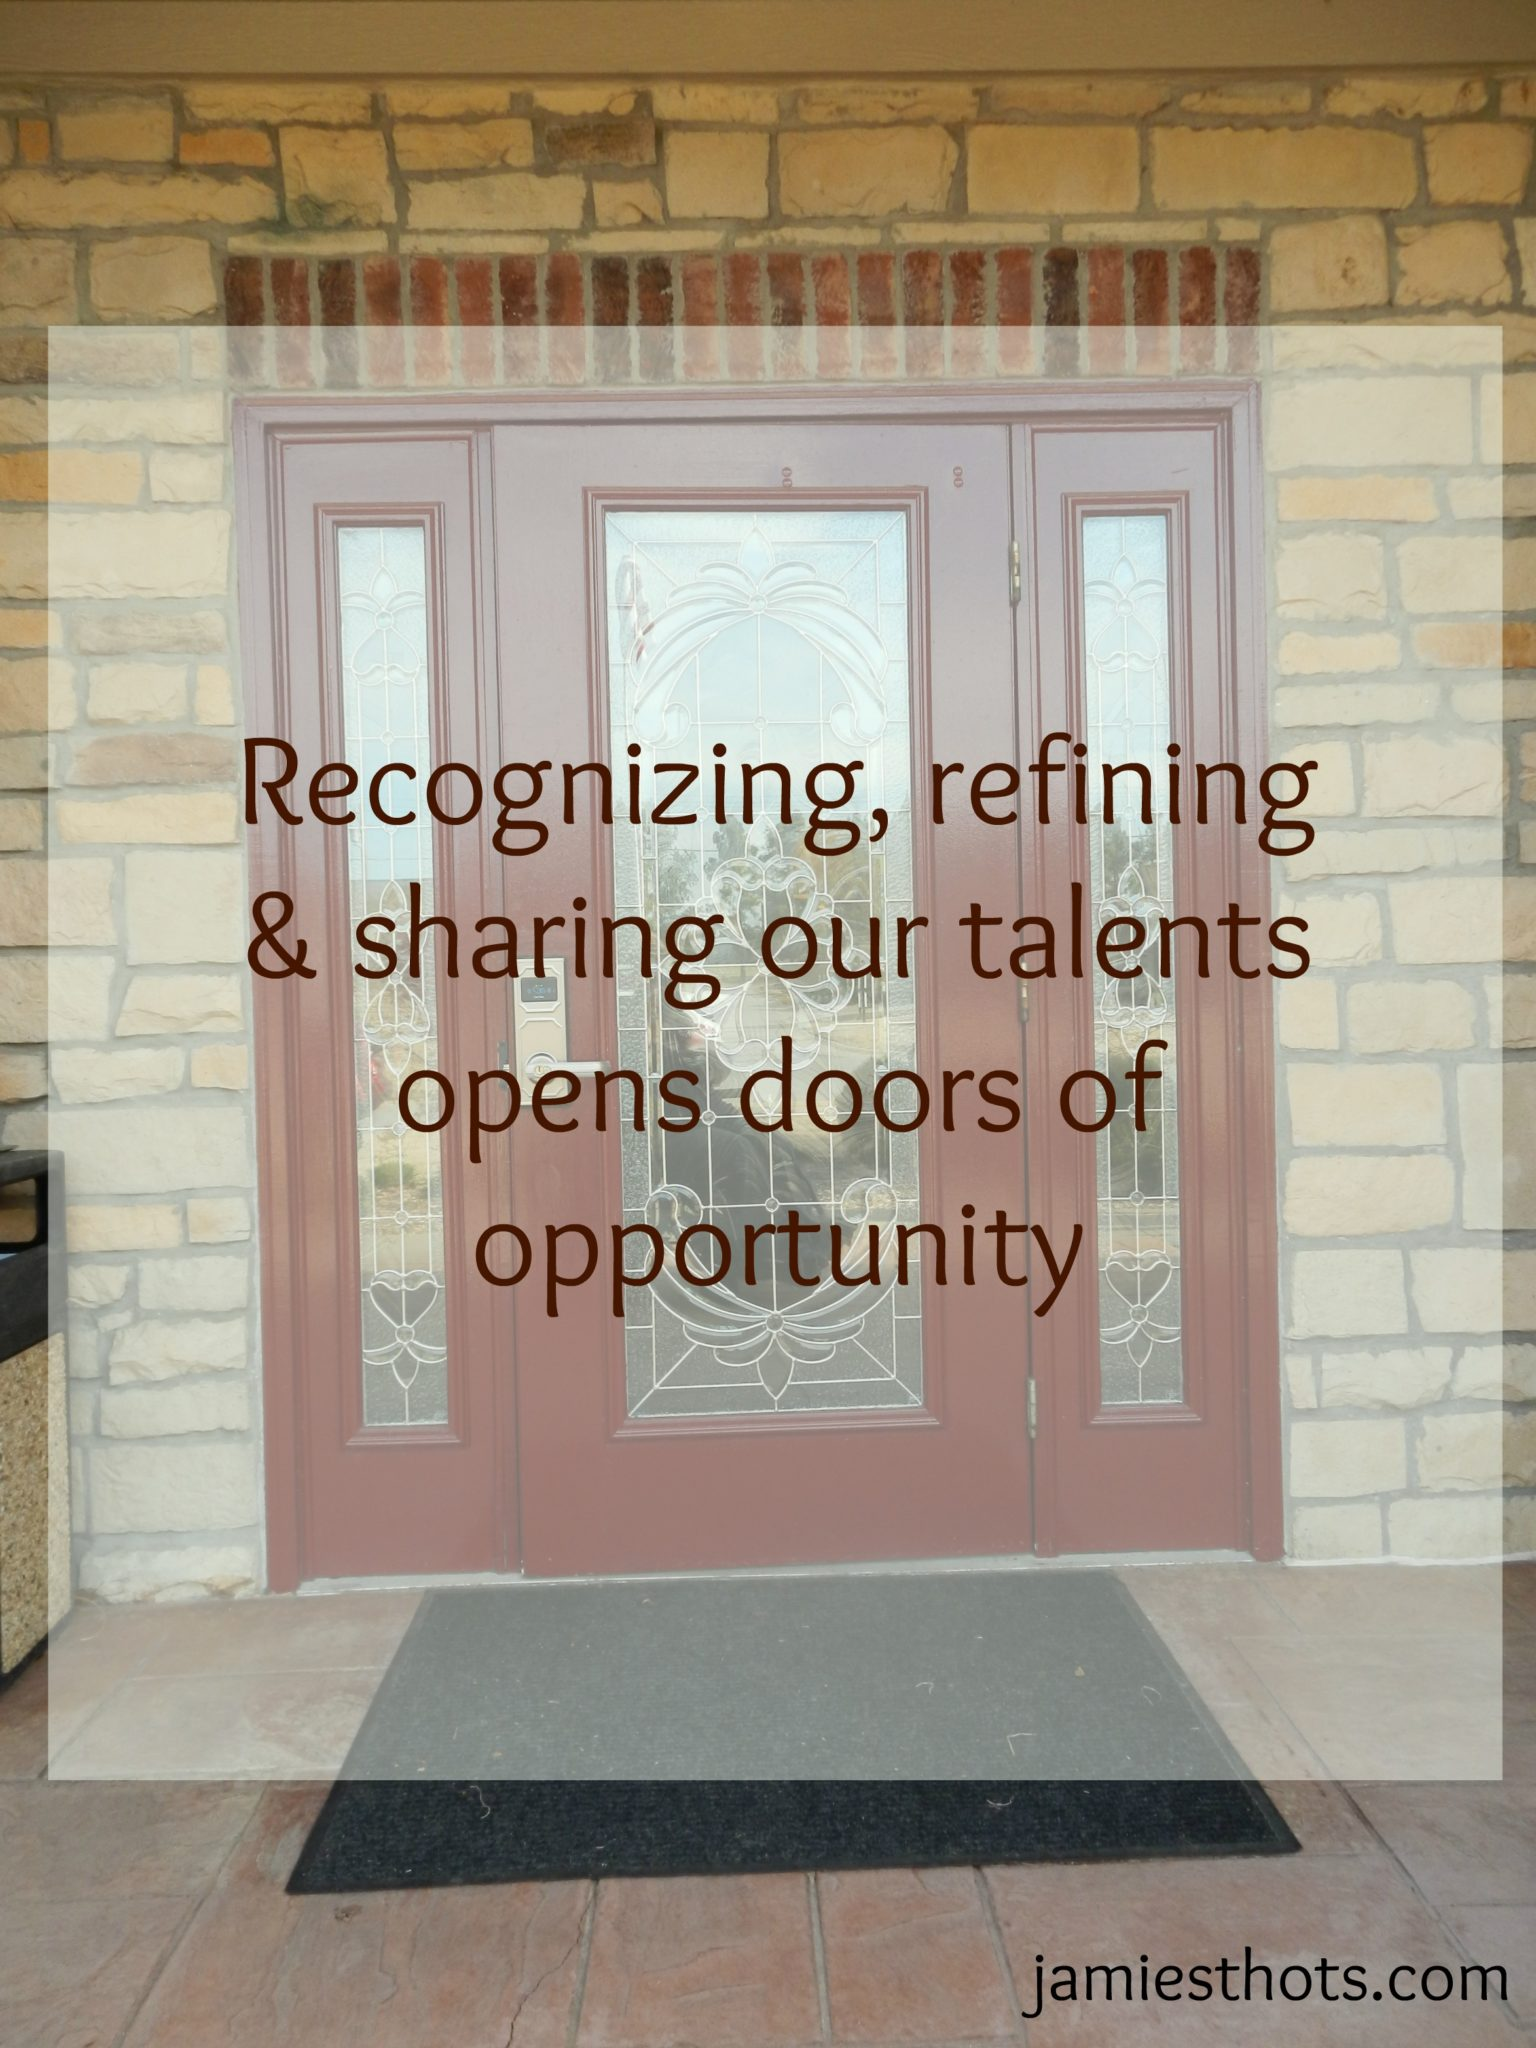 Recognizing, refining and sharing talent opens doors